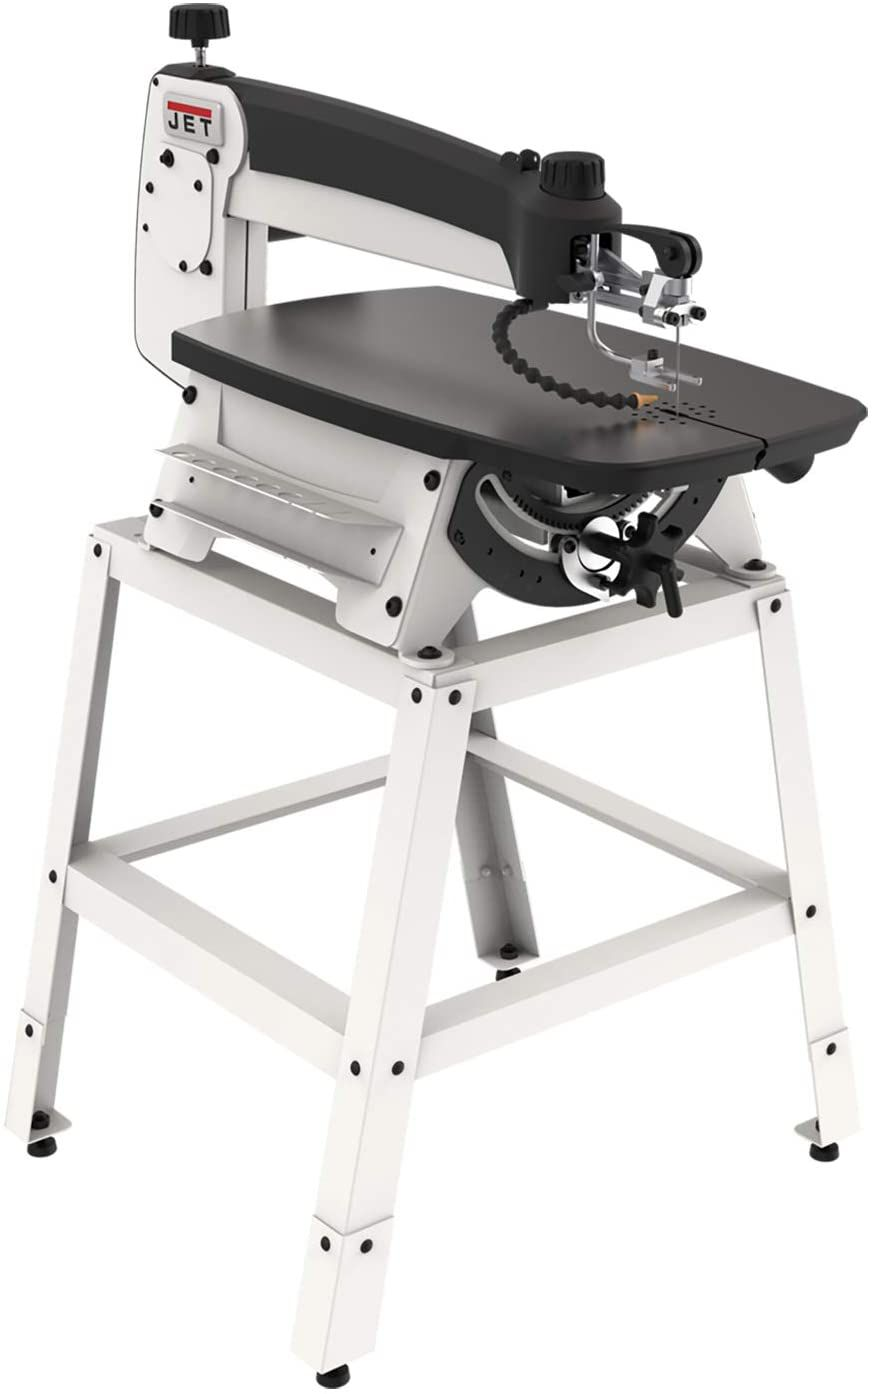 22-Inch Scroll Saw With Stand